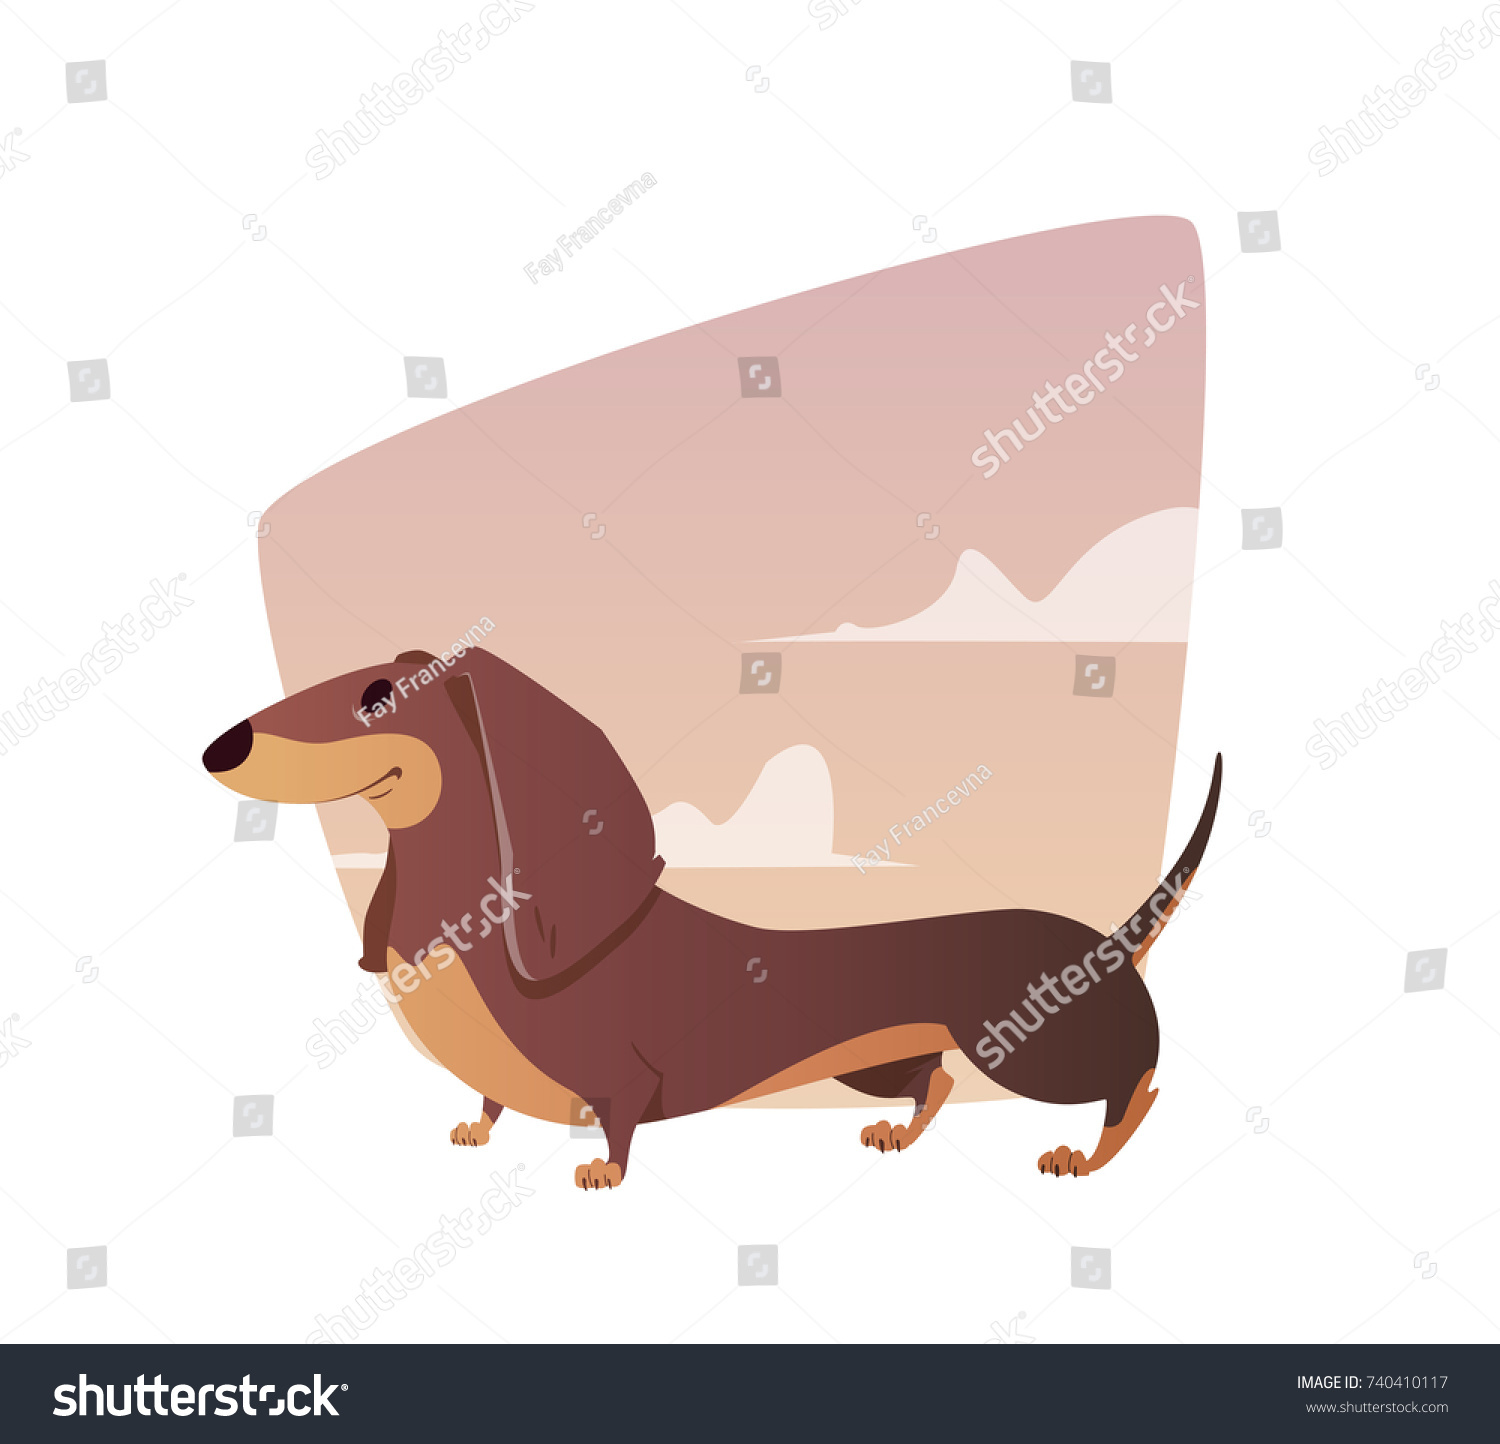 Tax: character, description and photo. Dachshund character - boy and girl 14